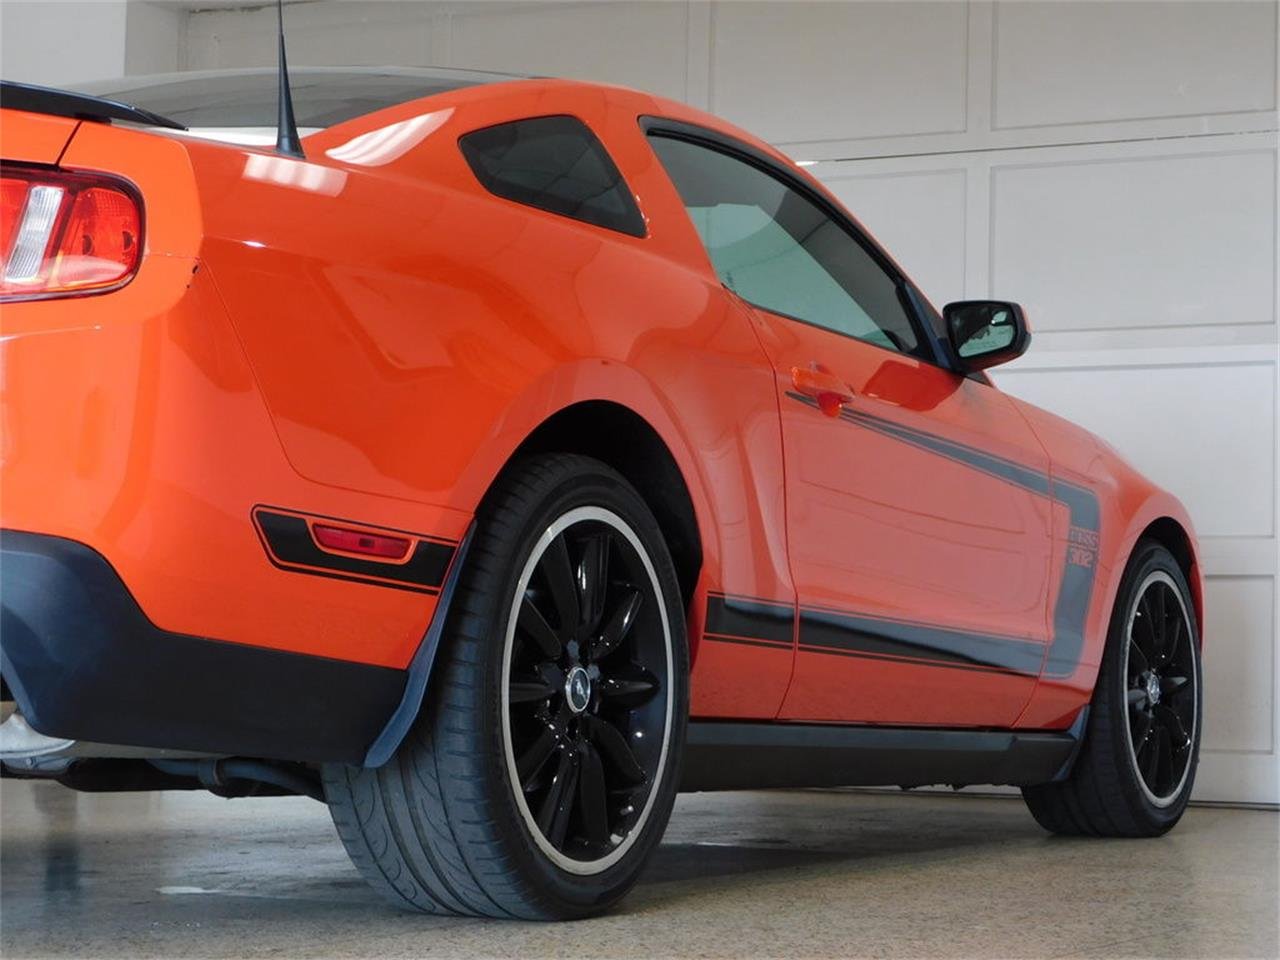 2012 Ford Mustang Boss 302 (CC-1380015) for sale in Hamburg, New York